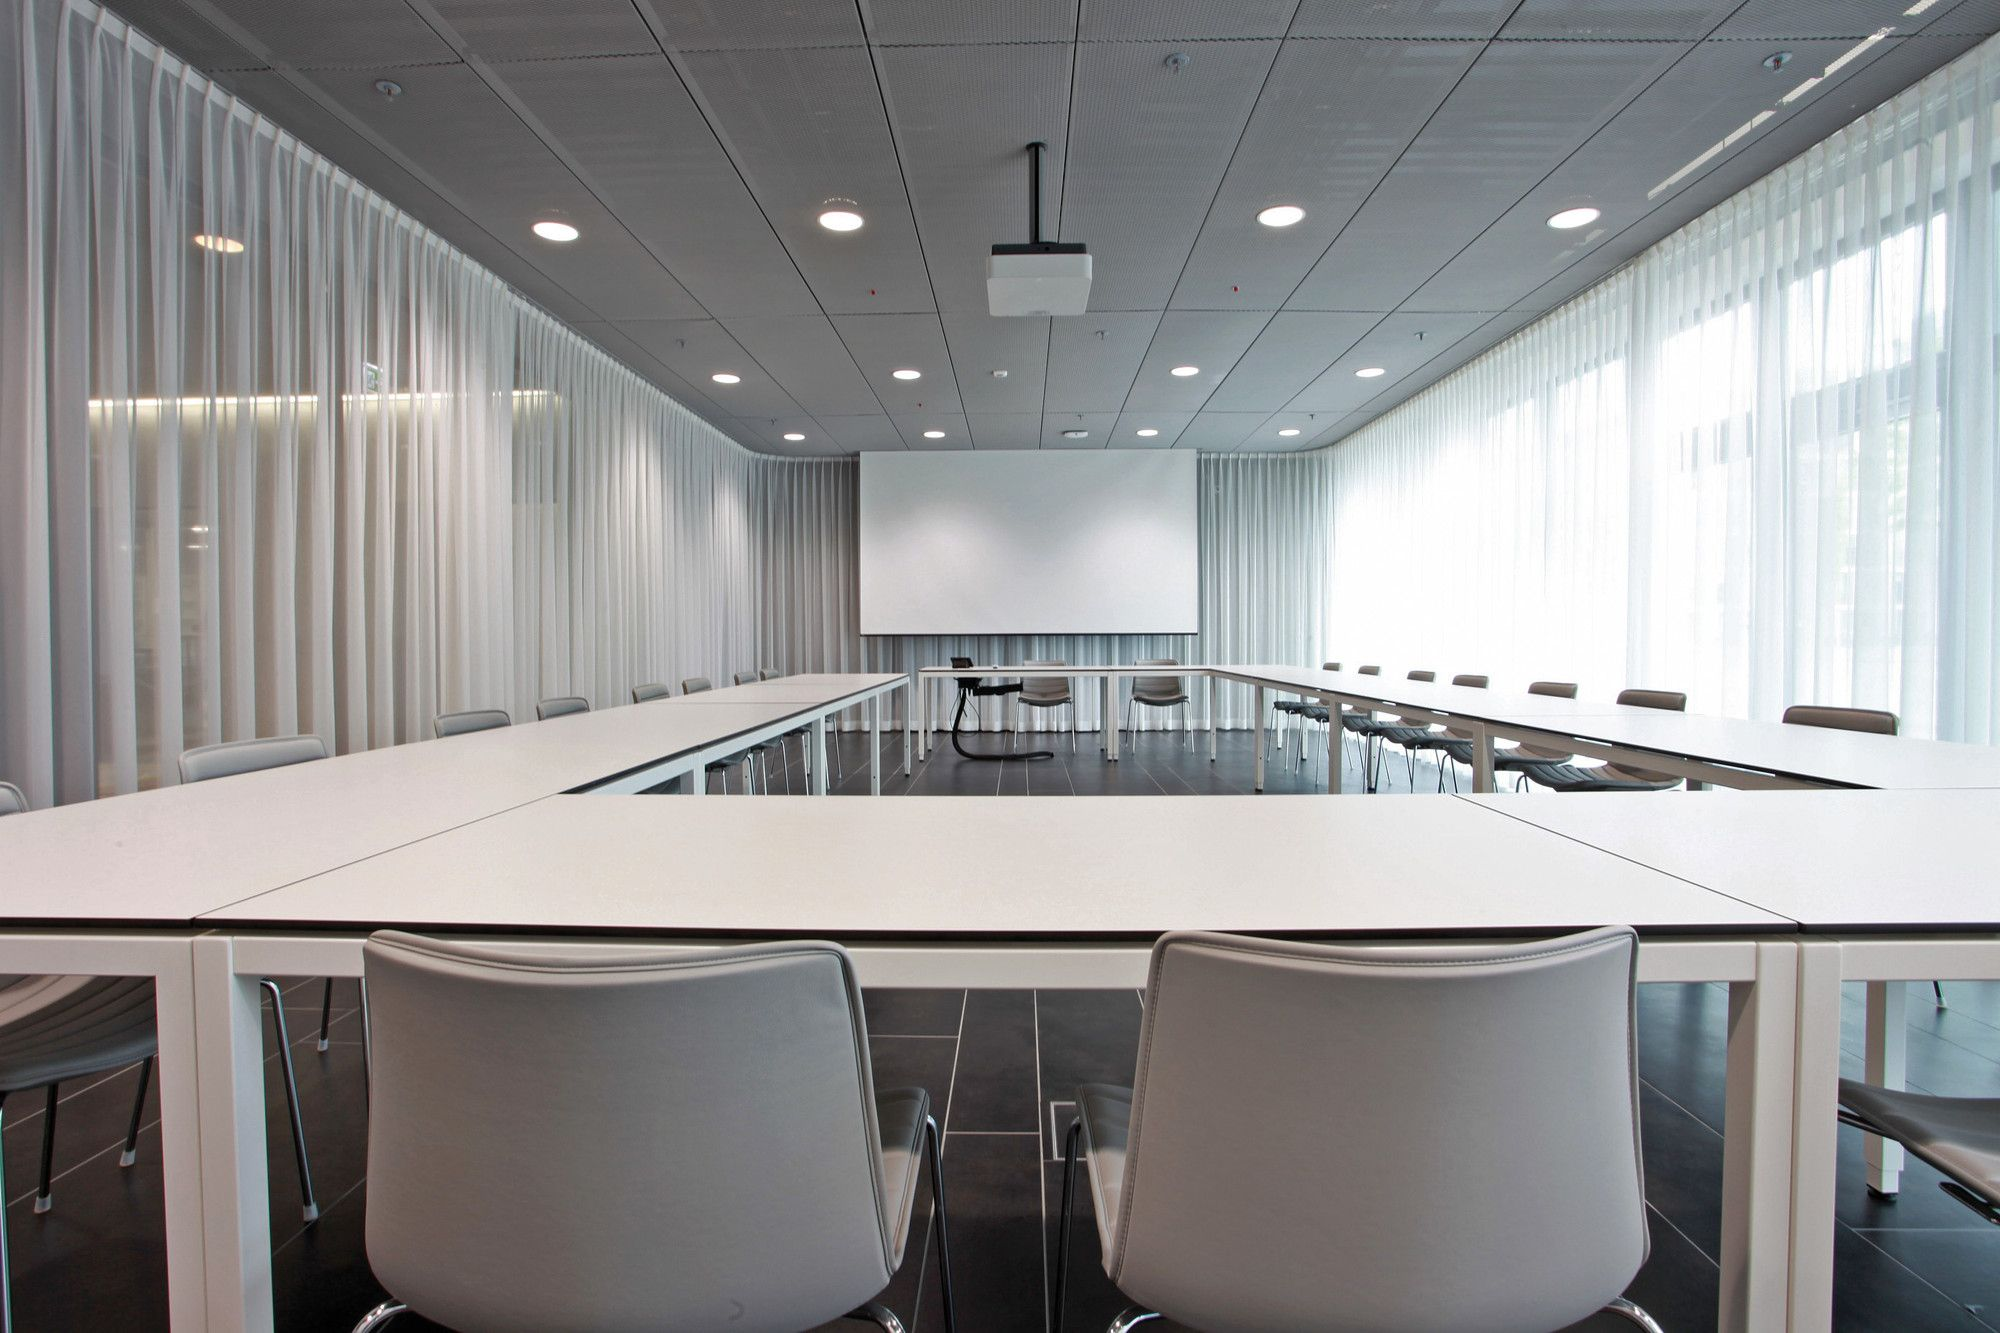 5300 Electric Curtain Track System In A Conference Room